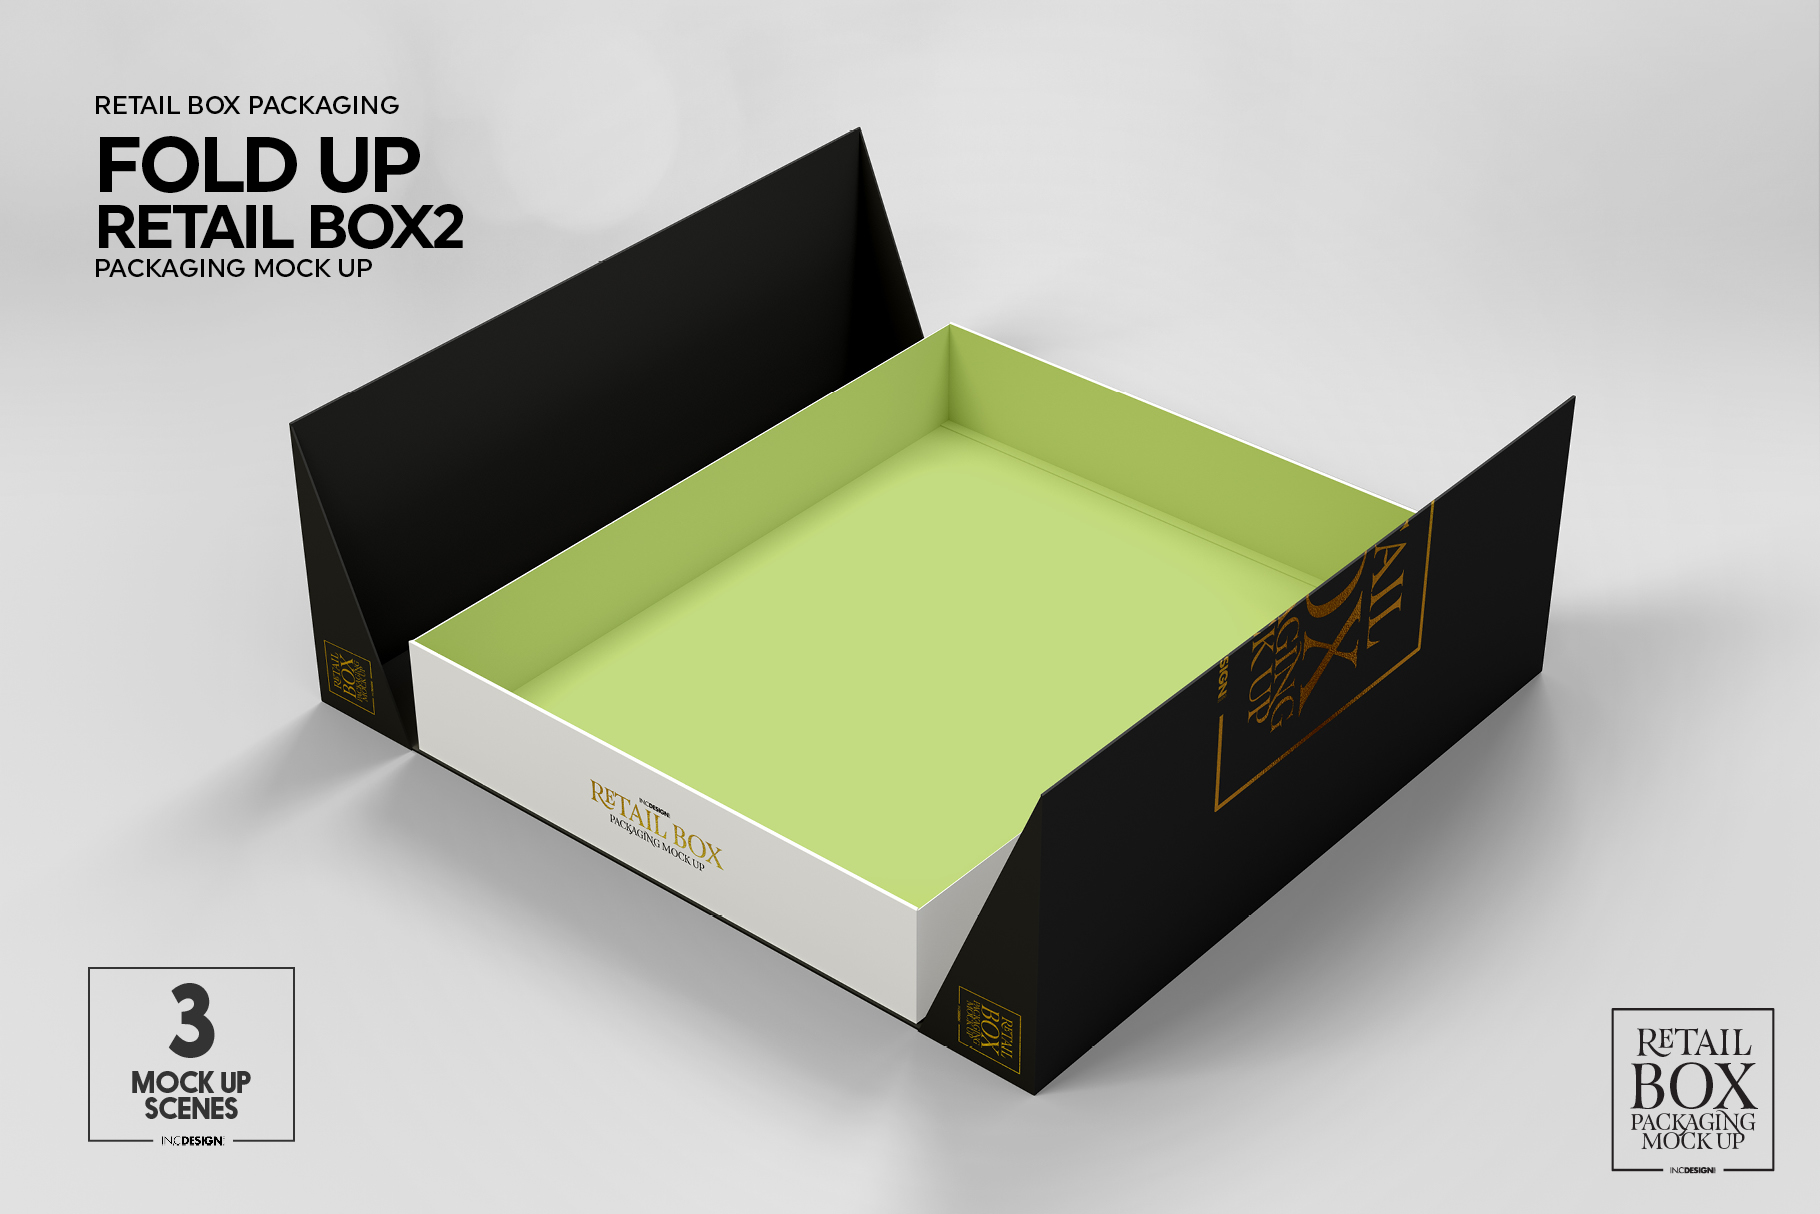 Fold Up Retail Thin Box Packaging Mockup example image 5